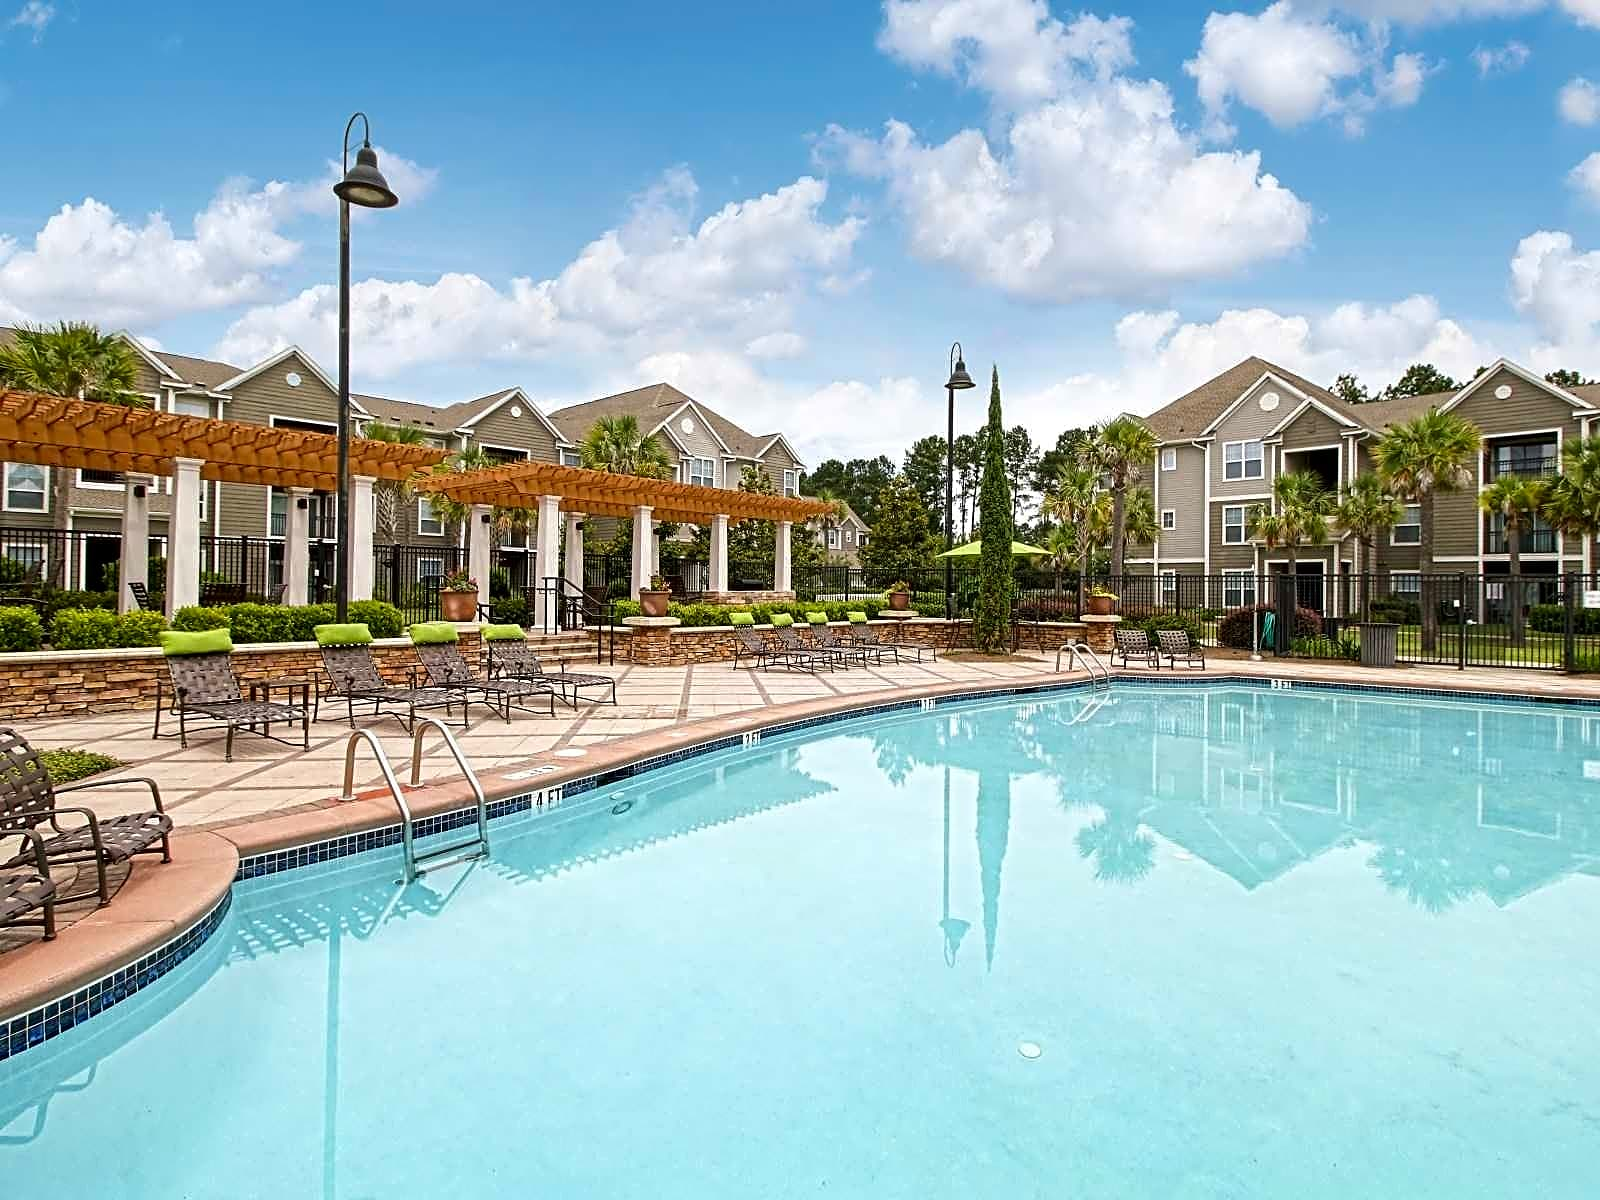 The Carlyle At Godley Station Apartments Pooler Ga 31322